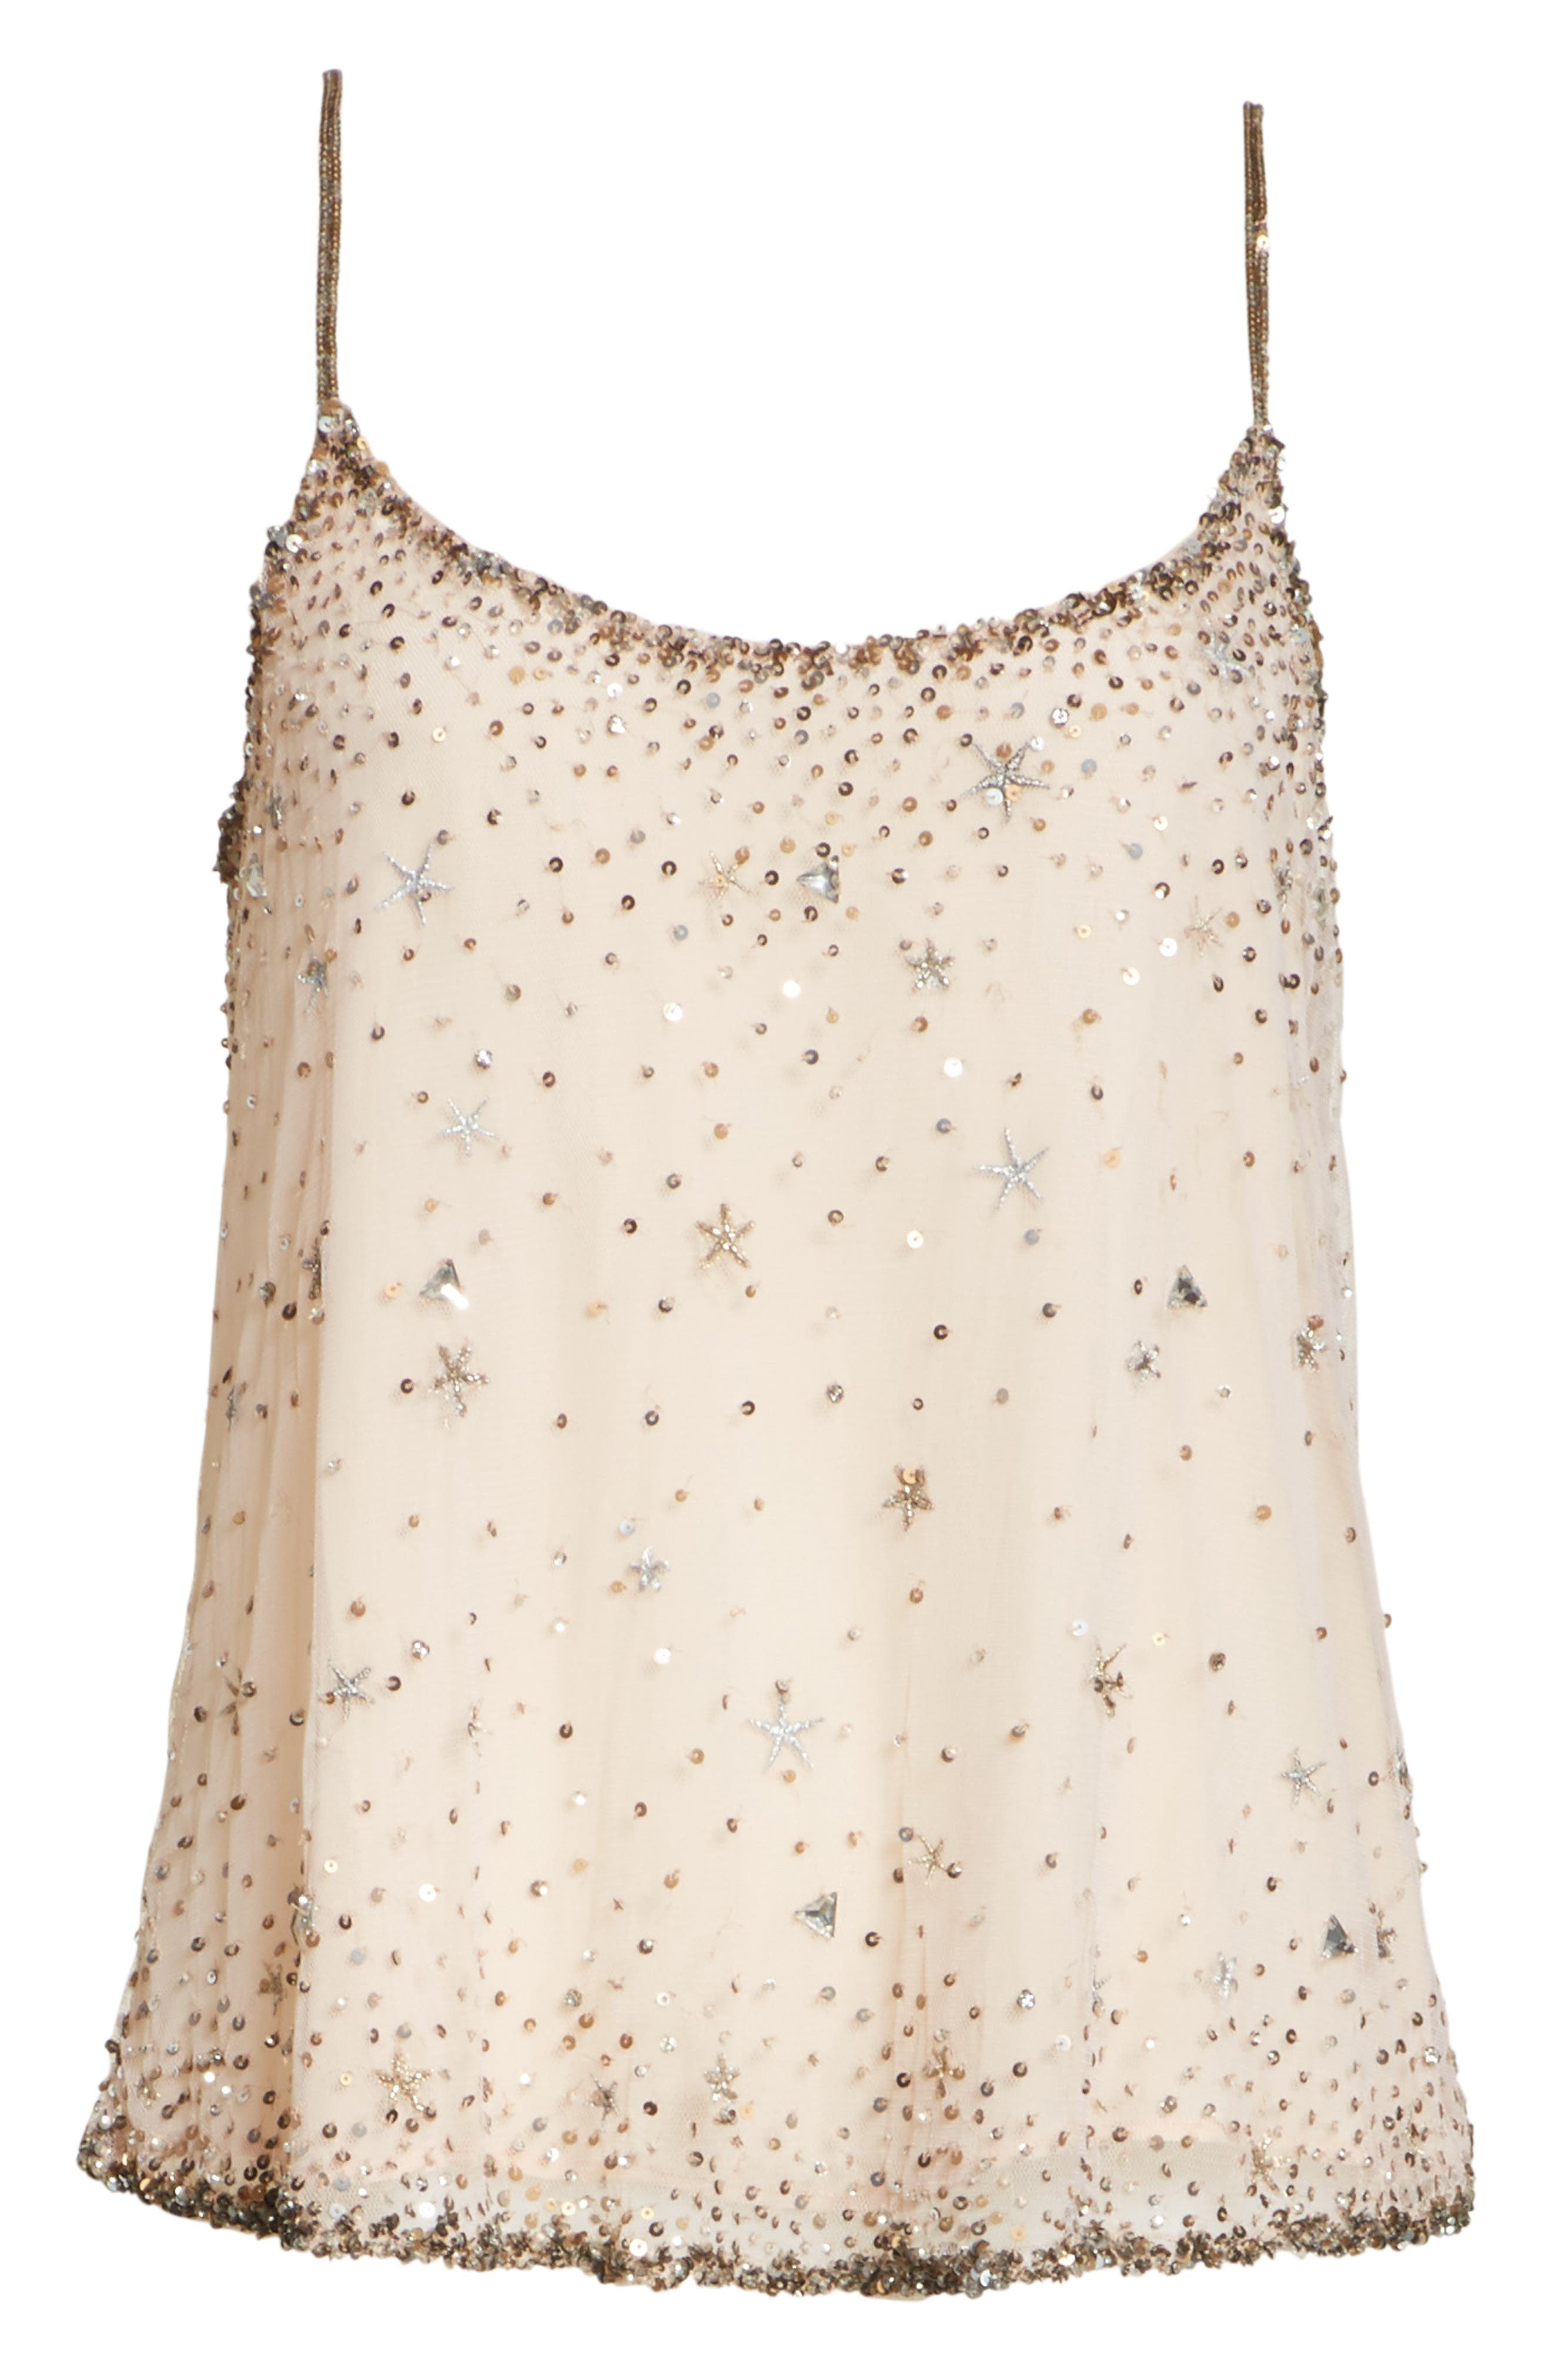 Garlen Beaded Camisole,                             Alternate thumbnail 6, color,                             Champagne